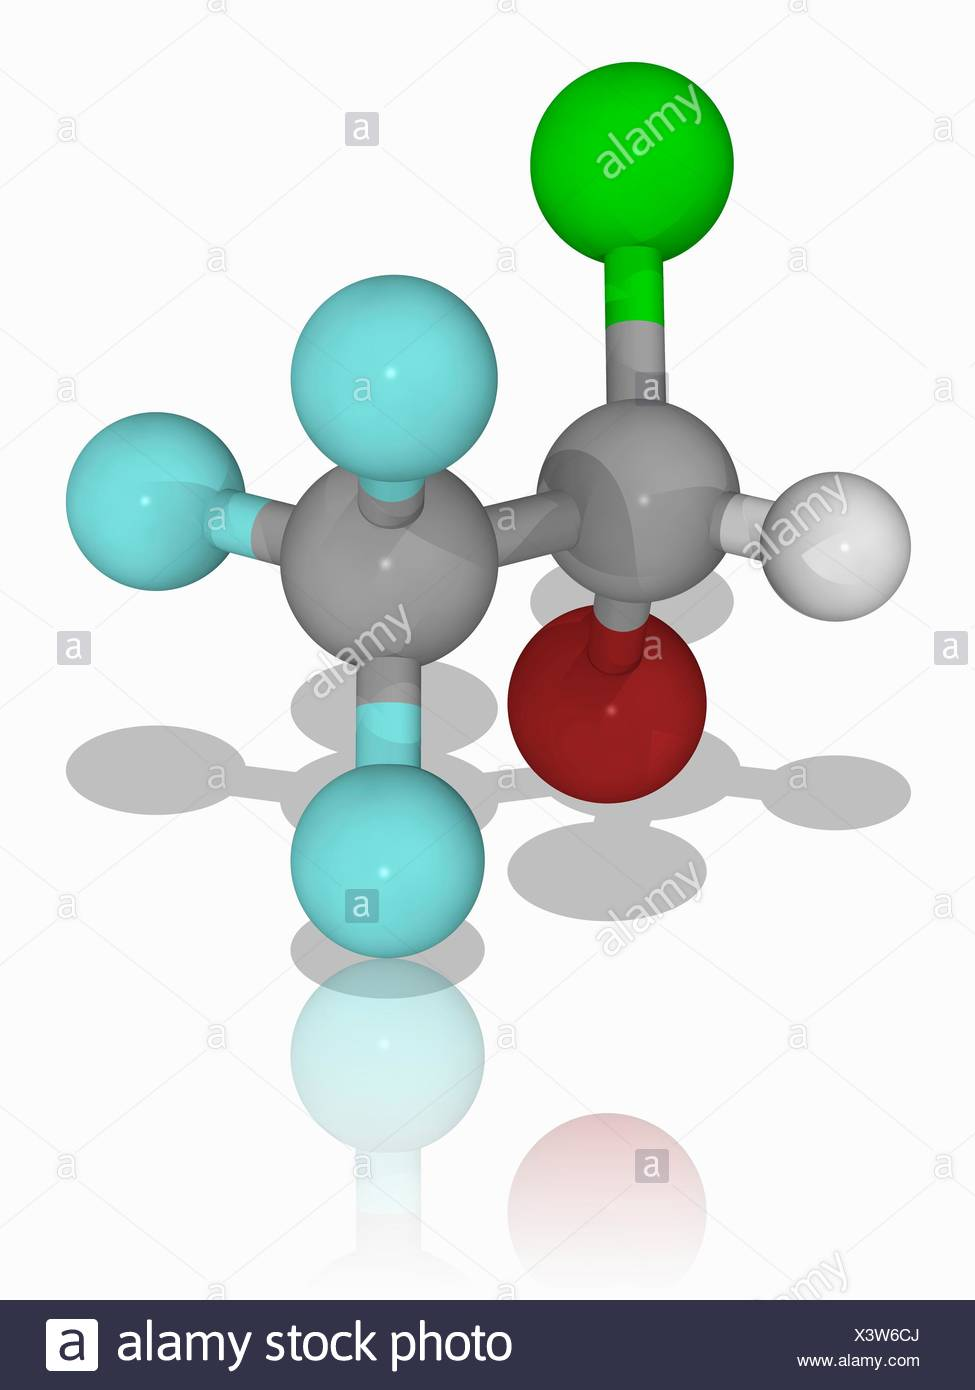 Halothane. Molecular model of the anaesthetic drug halothane (C2.H.Br.Cl.F3). This general anaesthetic is delivered by inhalation. It is also knowns as Fluothane. Atoms are represented as spheres and are colour-coded: carbon (grey), hydrogen (white), fluorine (cyan), bromine (brown) and chlorine (green). Illustration. - Stock Image